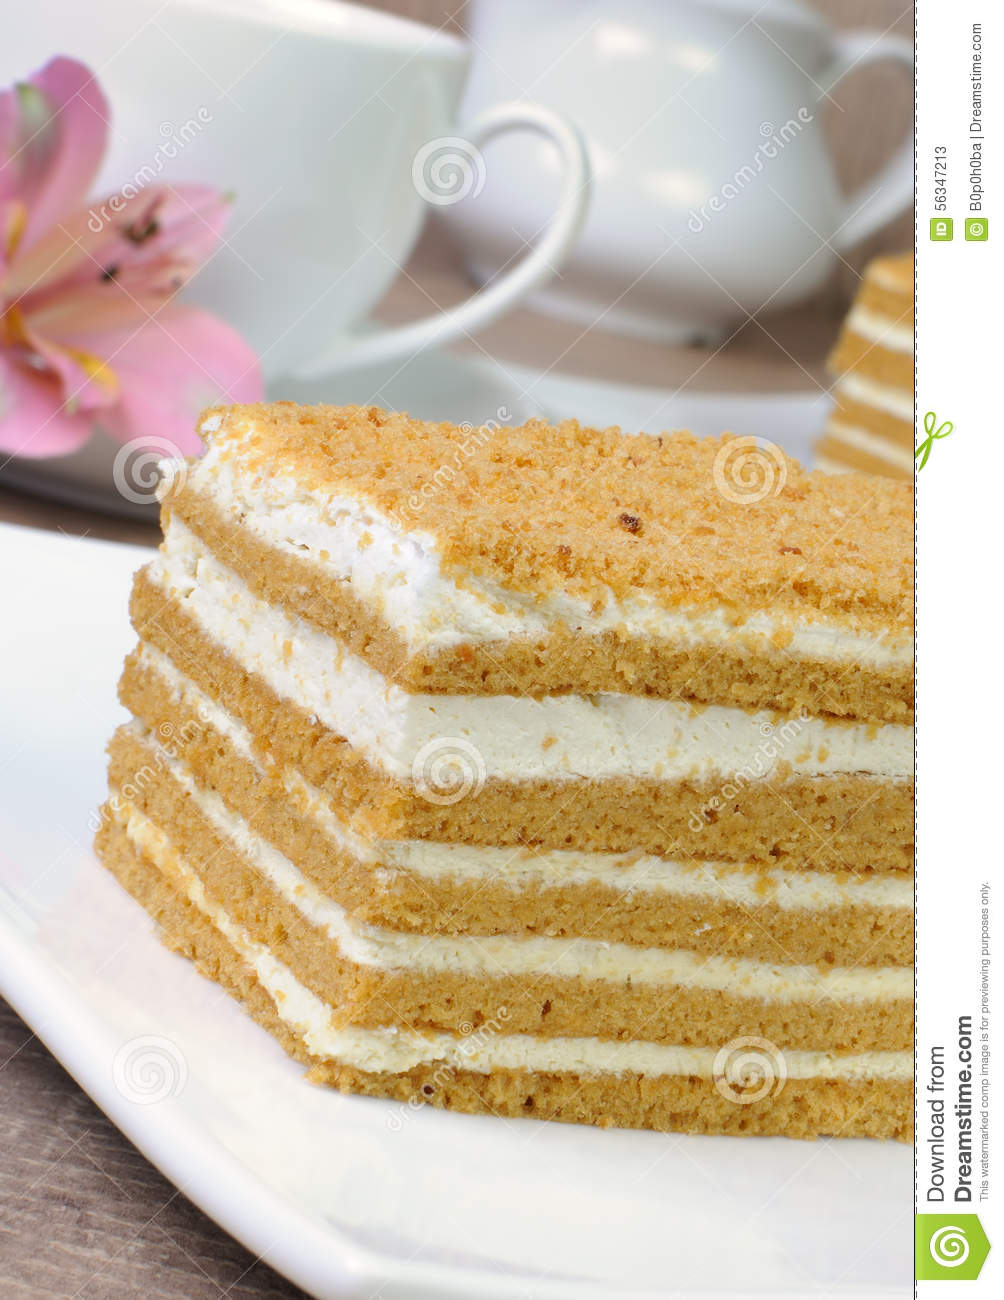 Clipart Of Honey Cake : Honey Cake Stock Photo - Image: 56347213